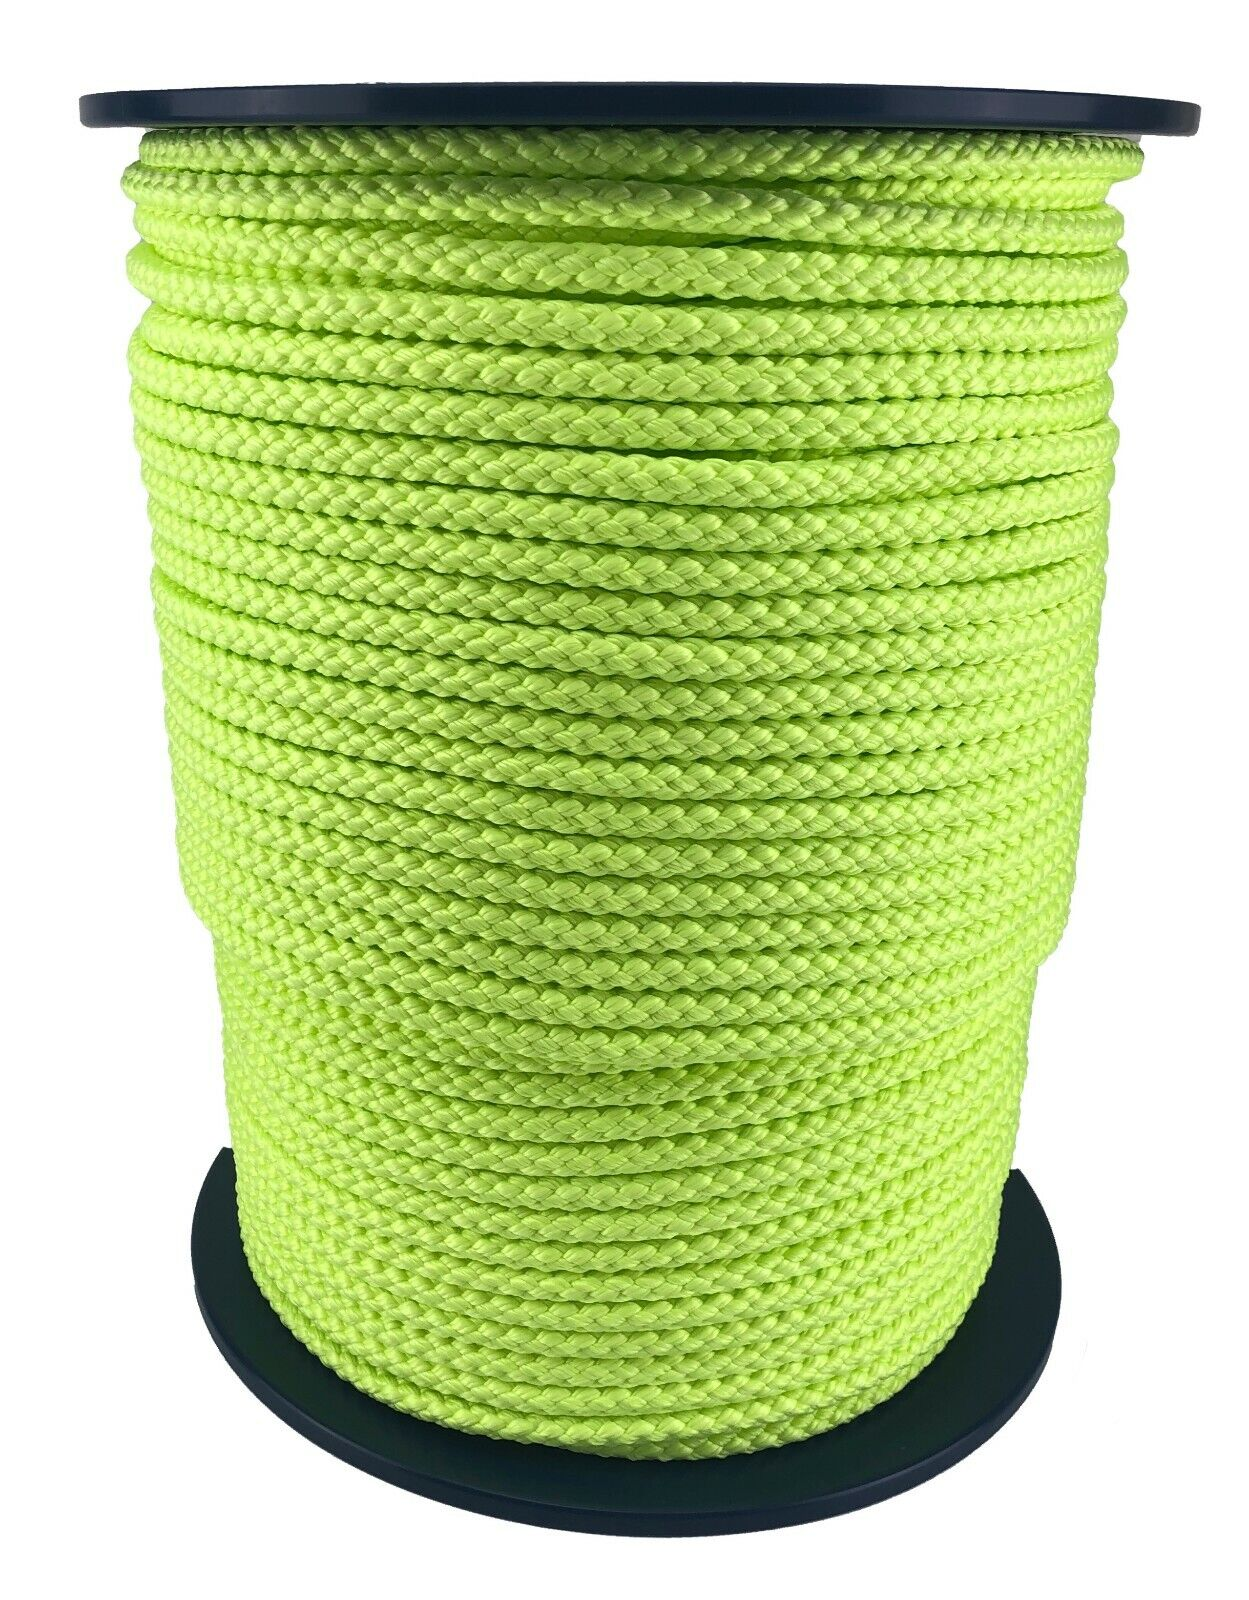 12mm Fluorescent Yellow Polypropylene Rope x 50 Metres Braided Sailing Boating